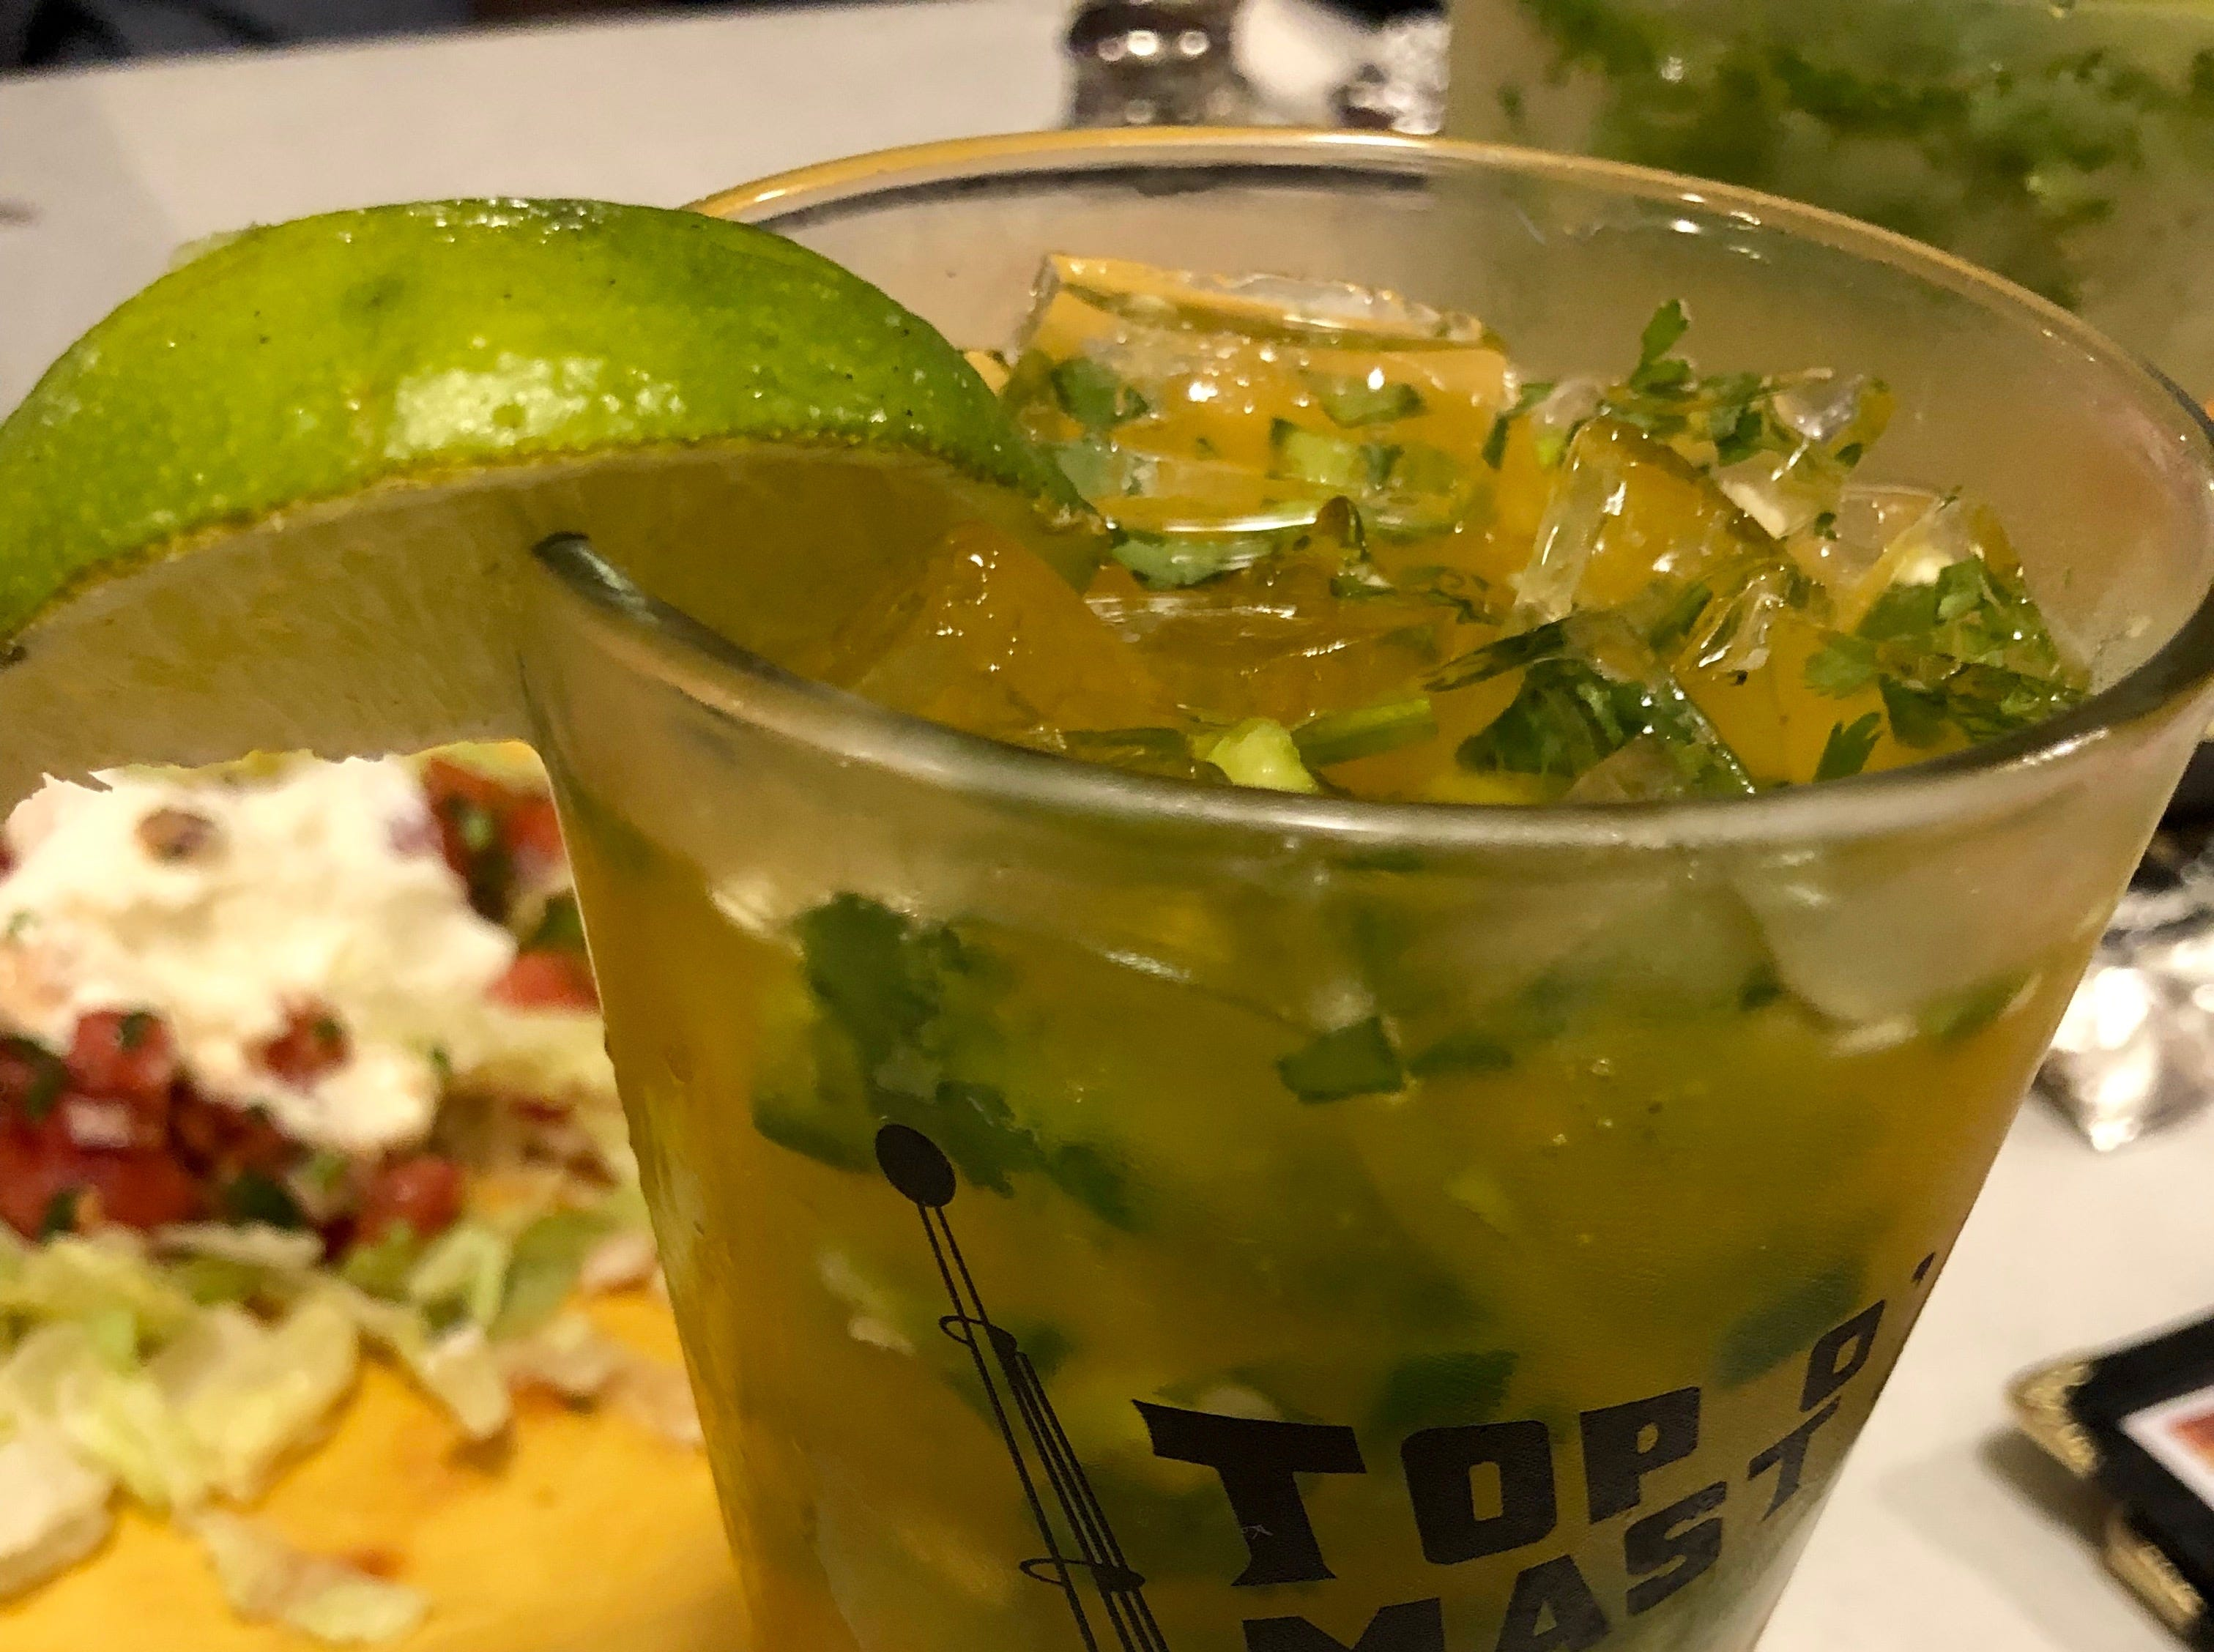 La Bamba's cilantro-jalapeno-mango margarita that's mildly fruity, with a little spicy kick.